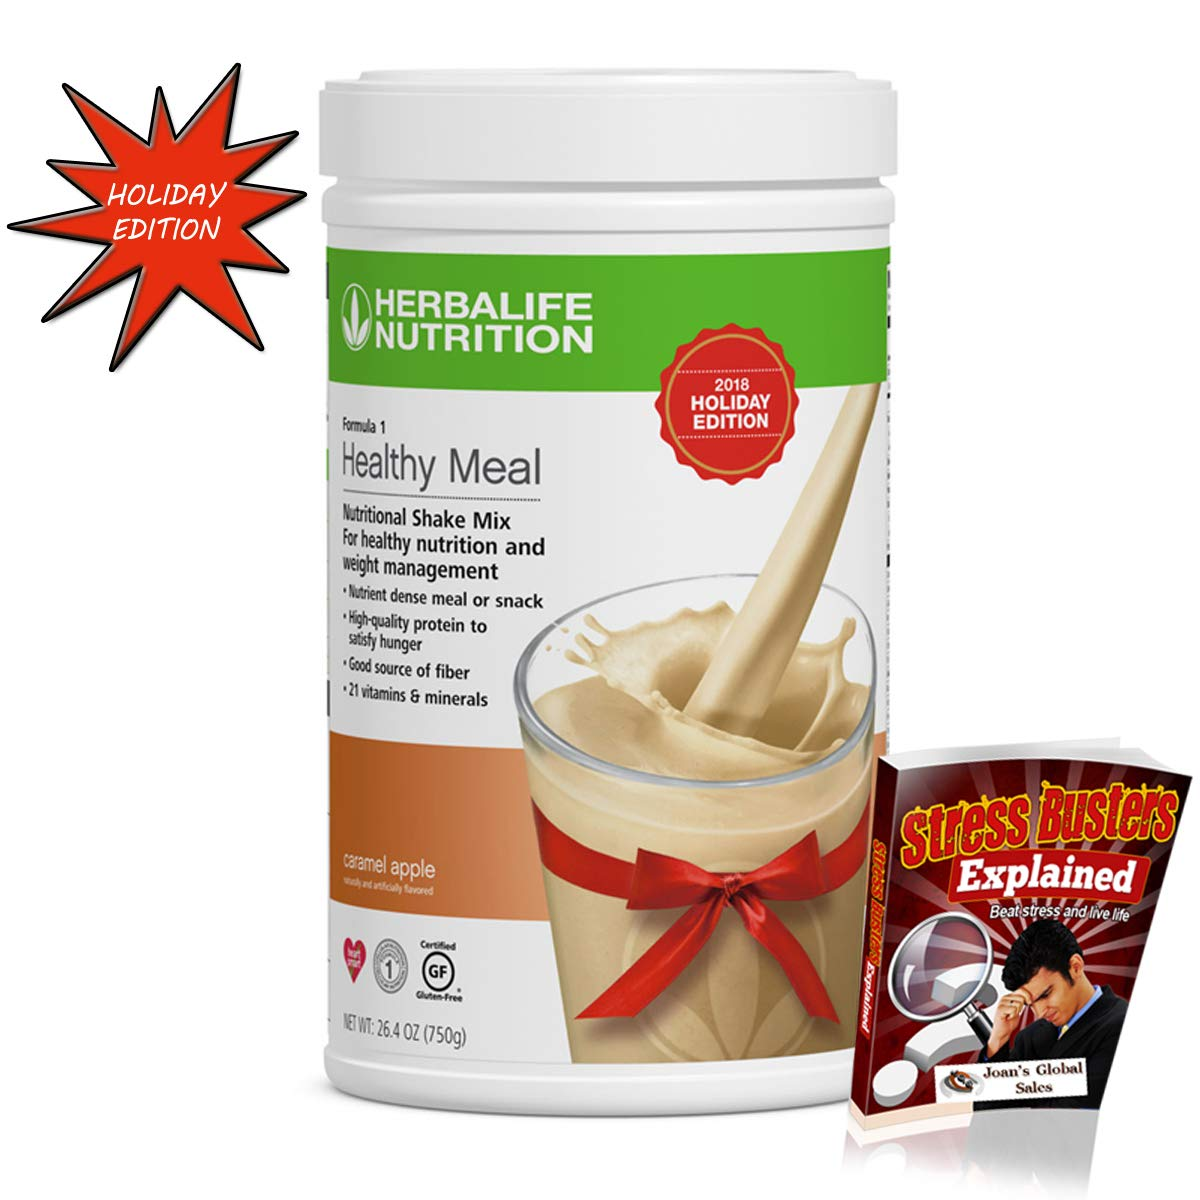 Amazon.com : Lose Weight Healthy Meal Formula 1 Nutritional Shake Mix Caramel Apple 750 g Limited Edition : Grocery & Gourmet Food